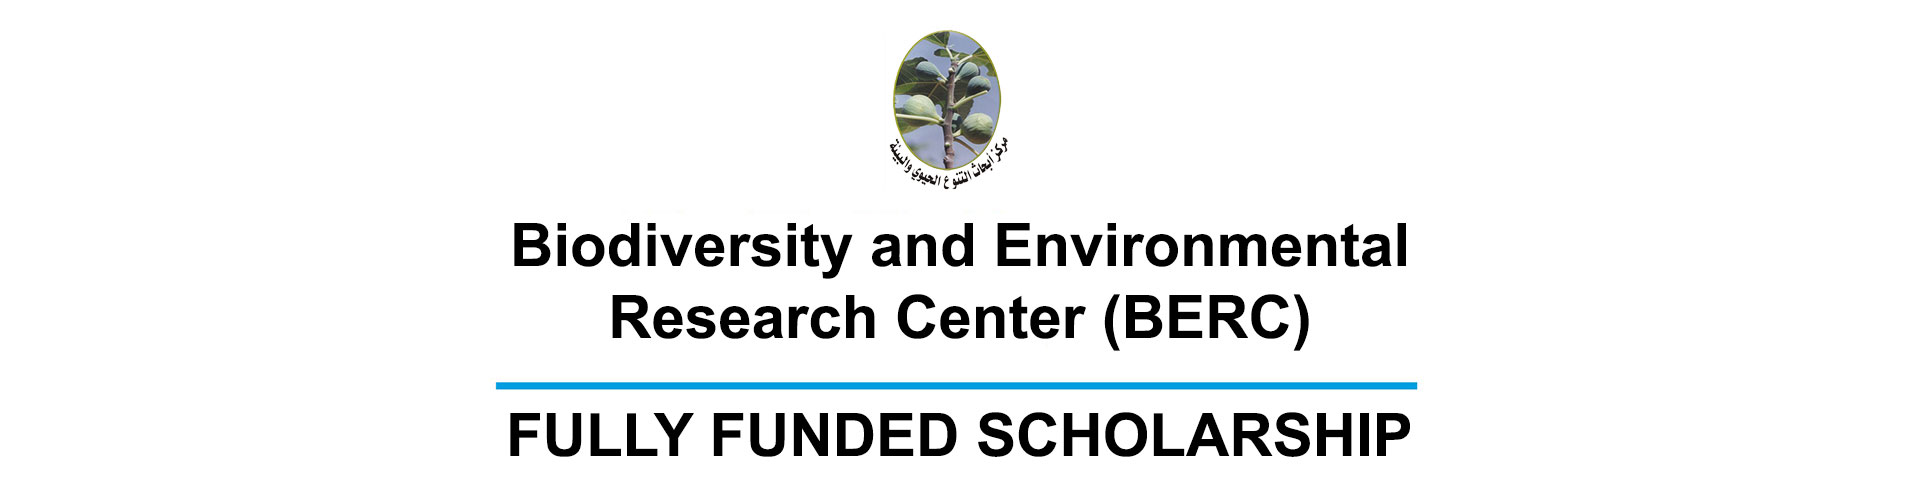 Full MSc and PhD Scholarships at BERC – Call for Applications